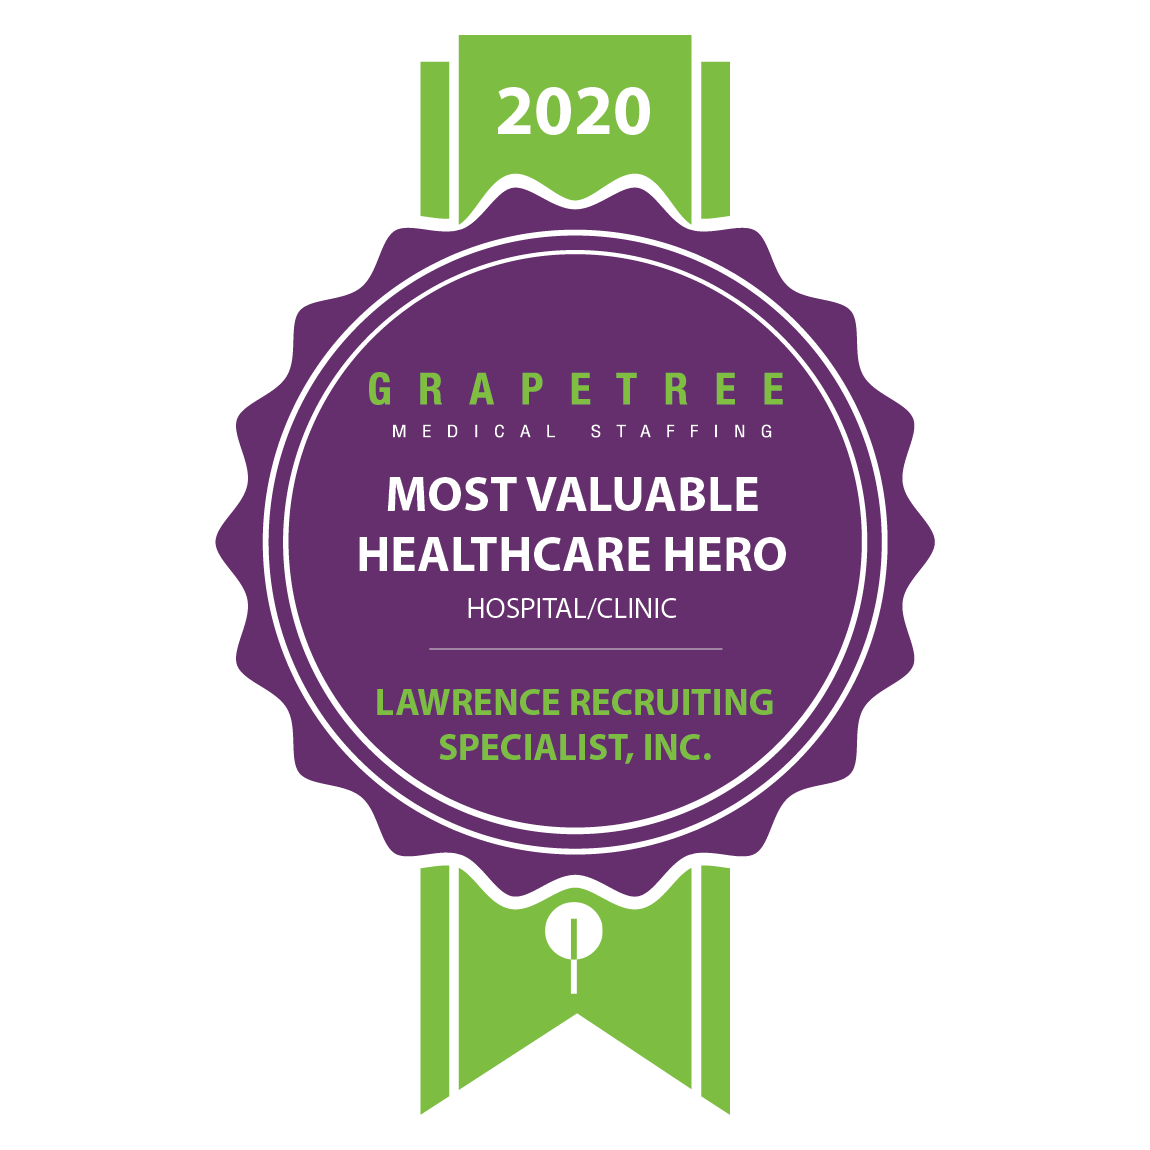 MOST VALUABLE HEALTHCARE HERO (HOSPITAL/CLINIC)  Lawrence Recruiting Specialists Inc.